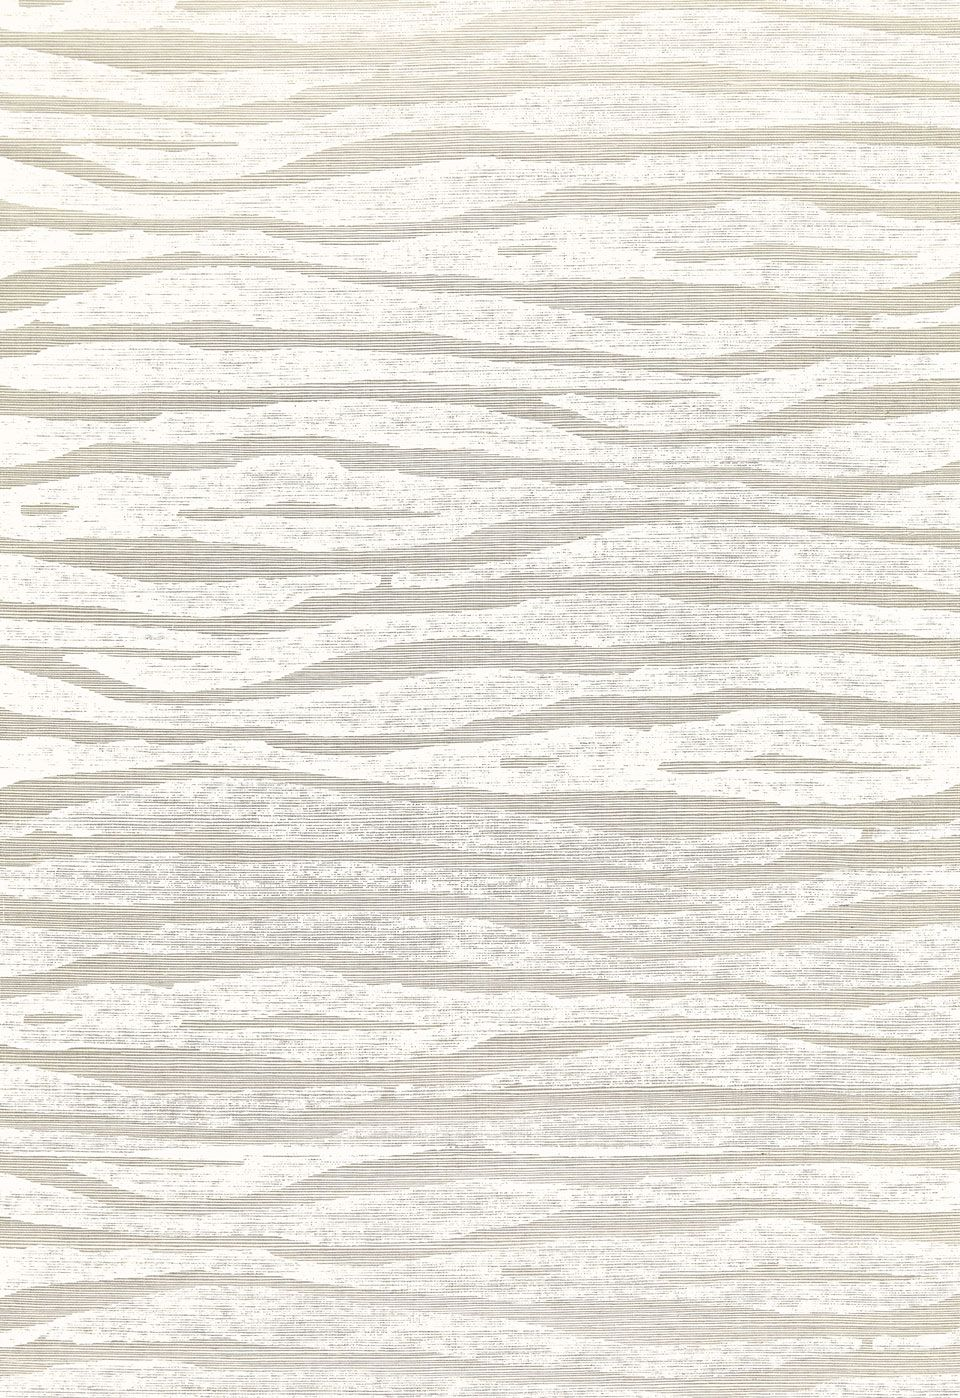 New Celerie Kemble ripple wallpaper in fog